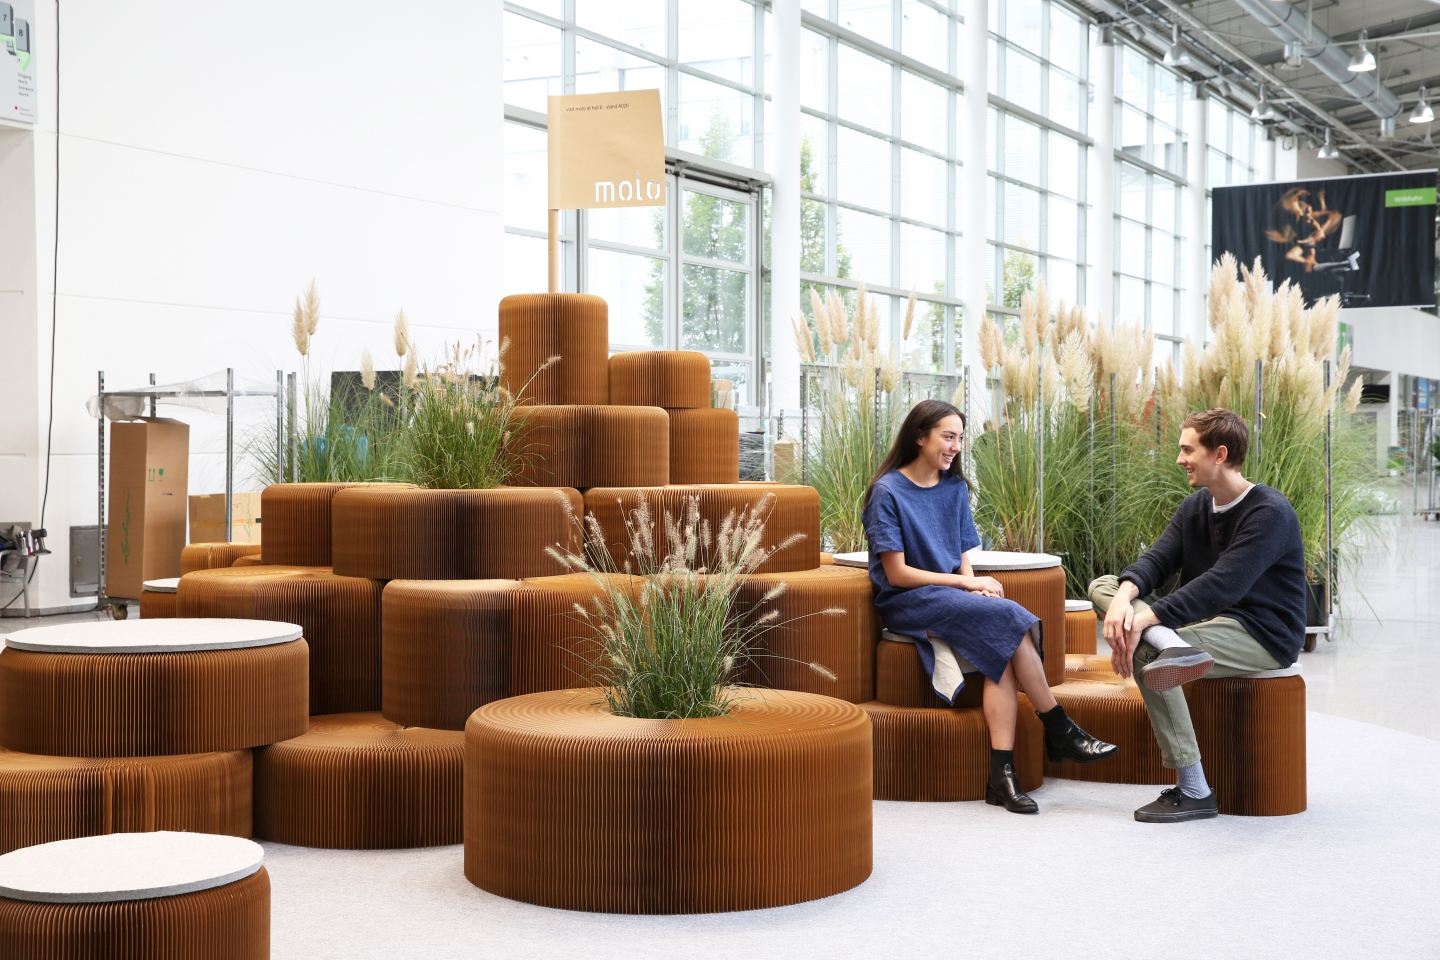 modular paper furniture by molo - a hill made from softseating and live plants at Orgatec 2014